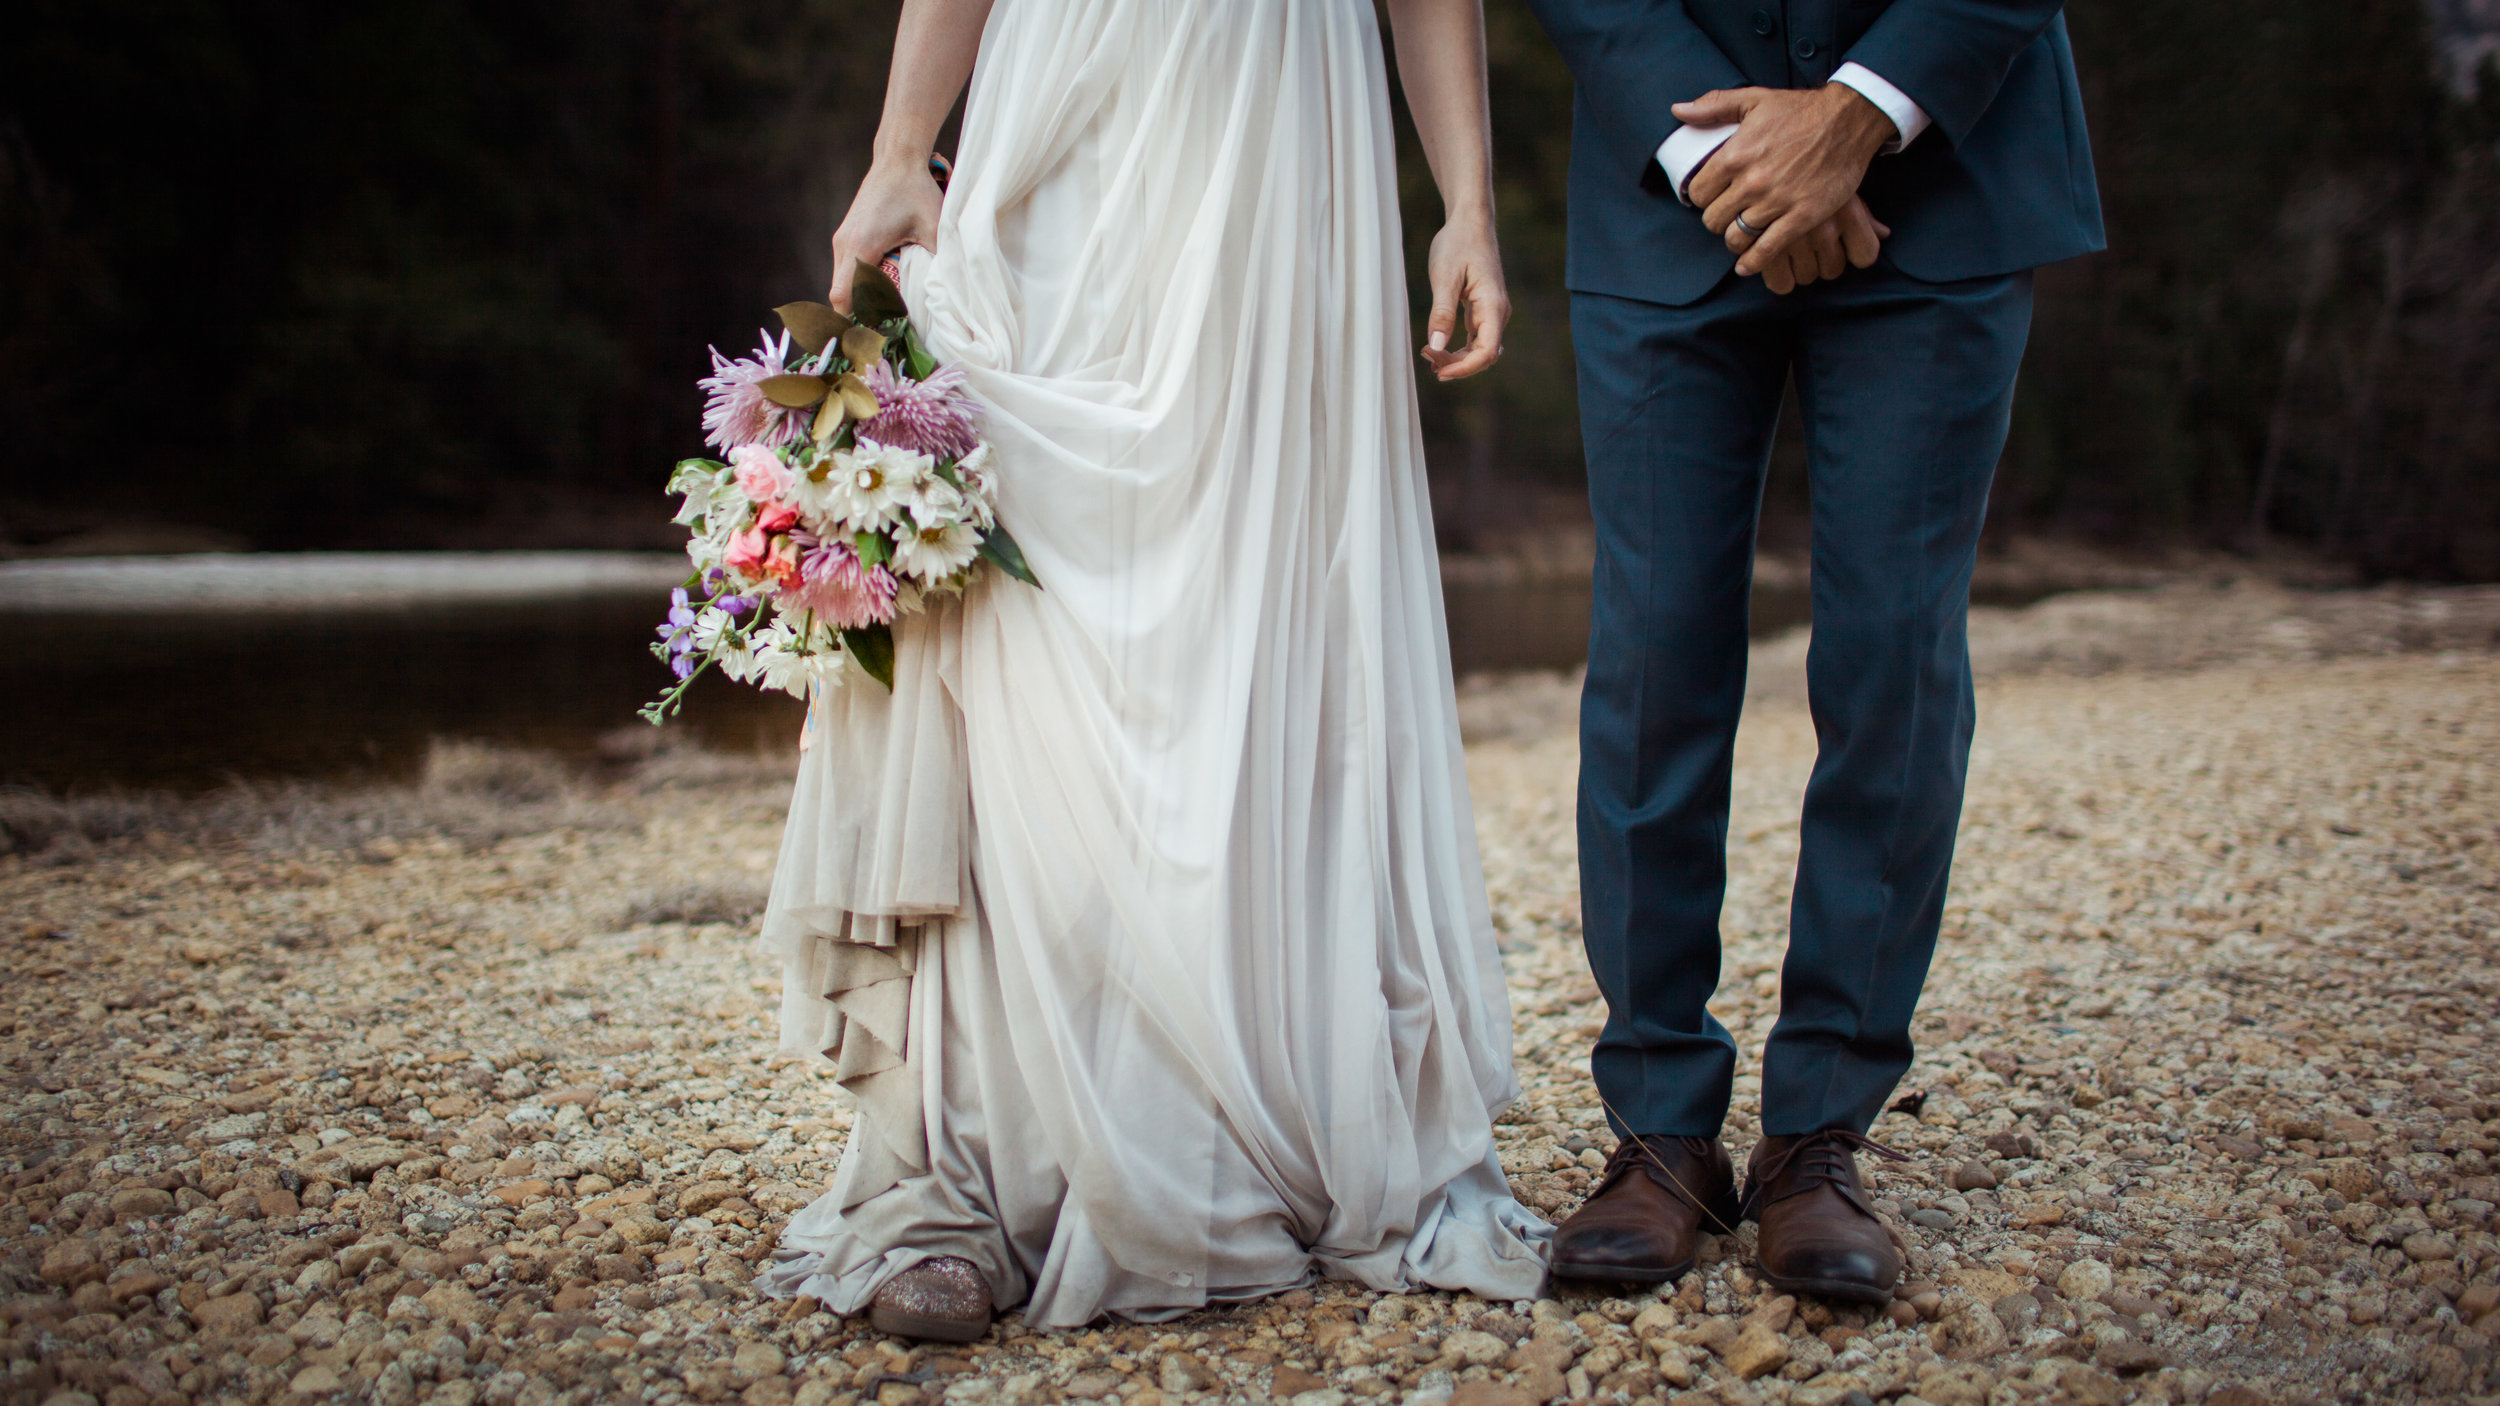 Tonya Merke Photography Adventure Wedding Photographer Yosemite NP